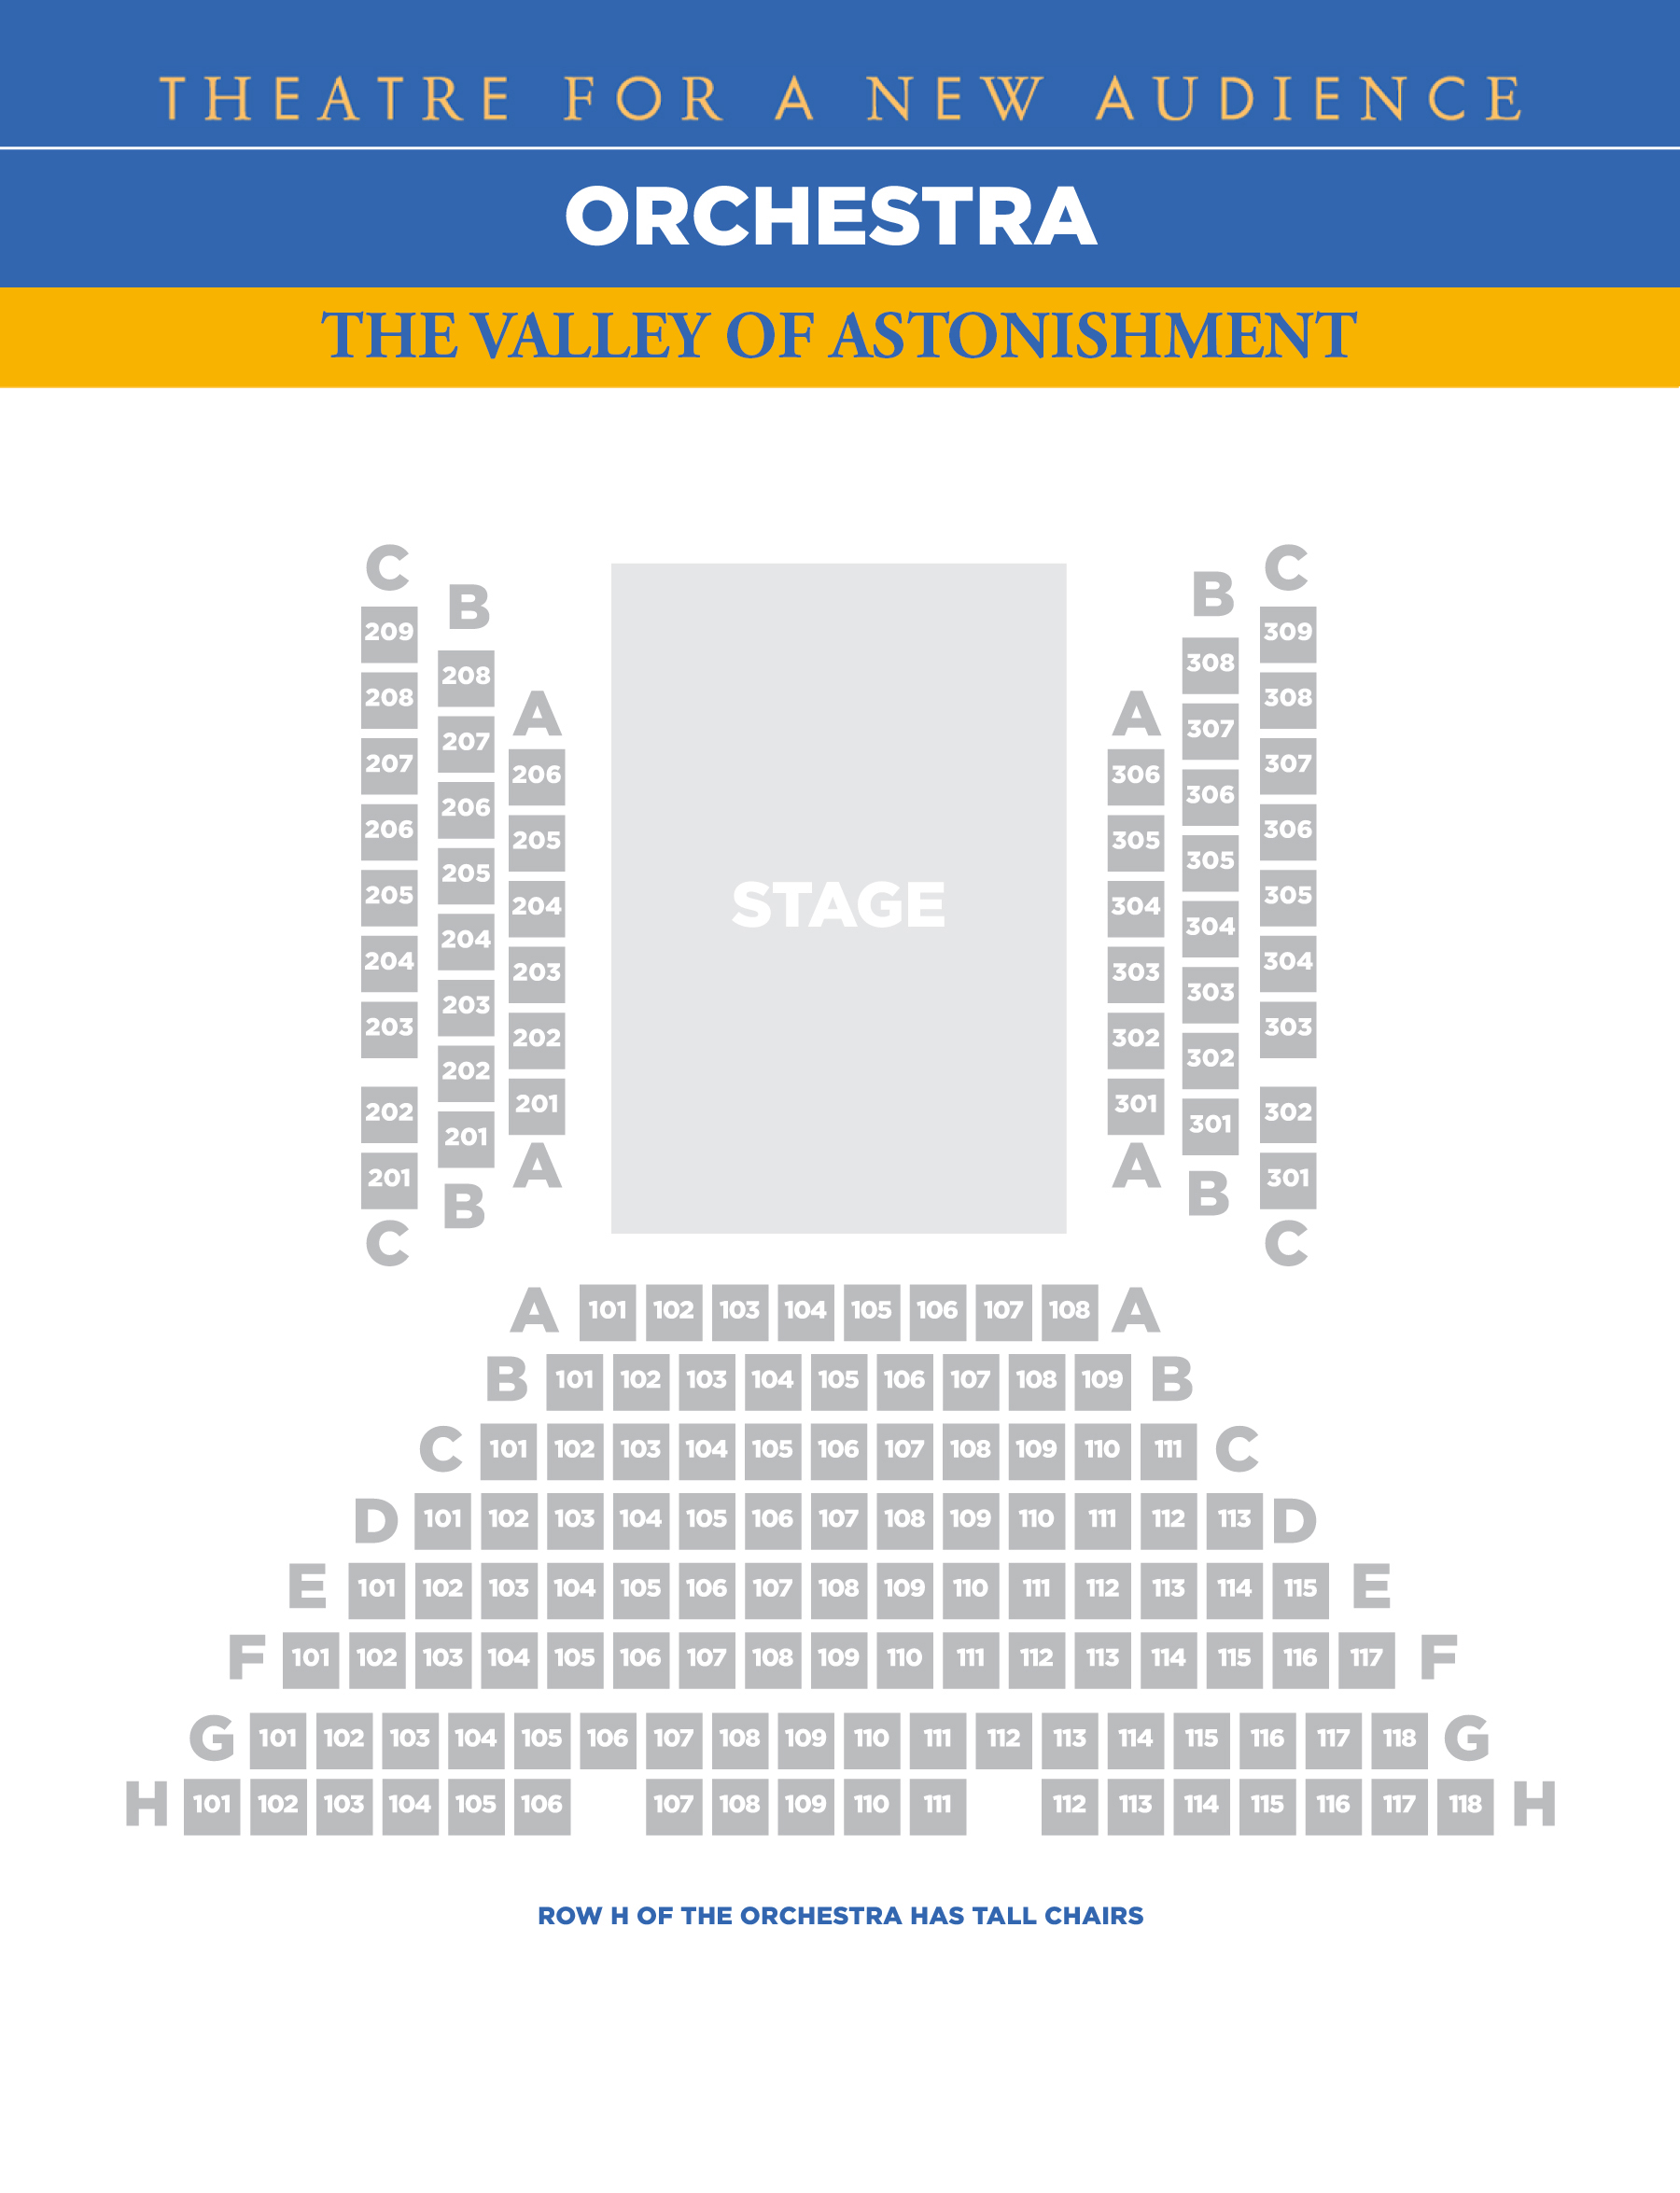 Seating Charts Theatre For A New Audience